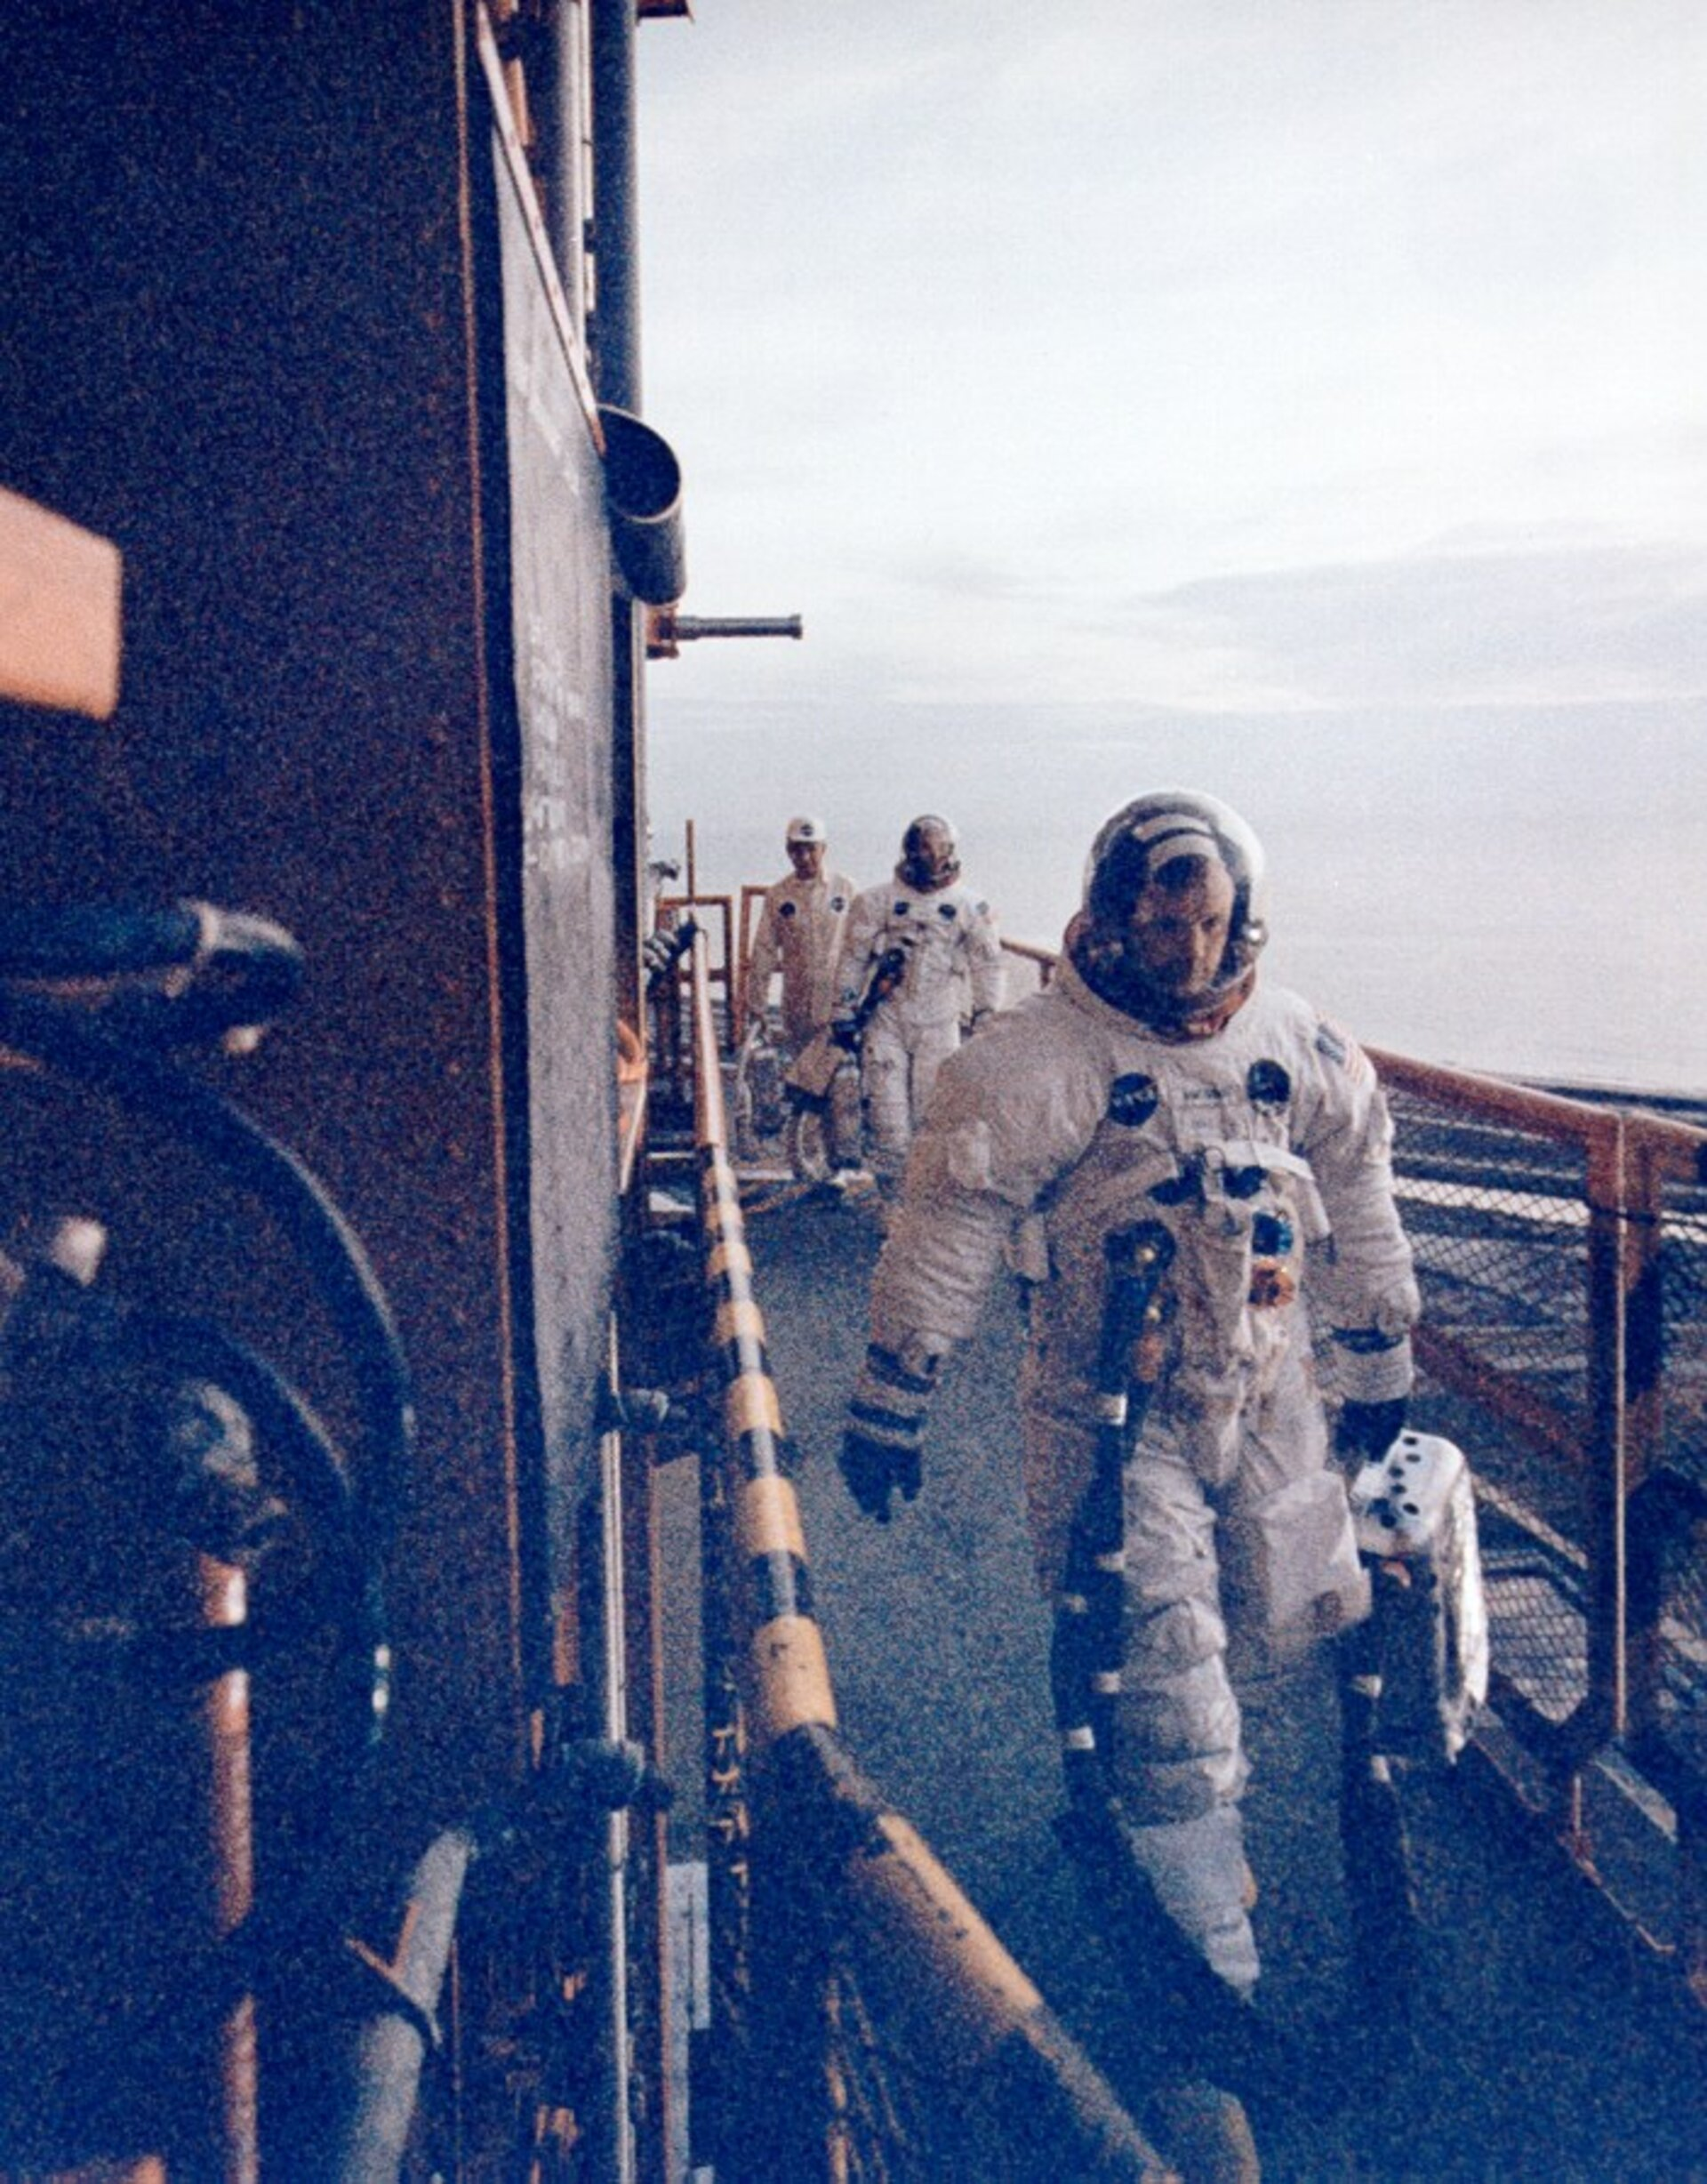 Apollo 11 crew about to enter spacecraft